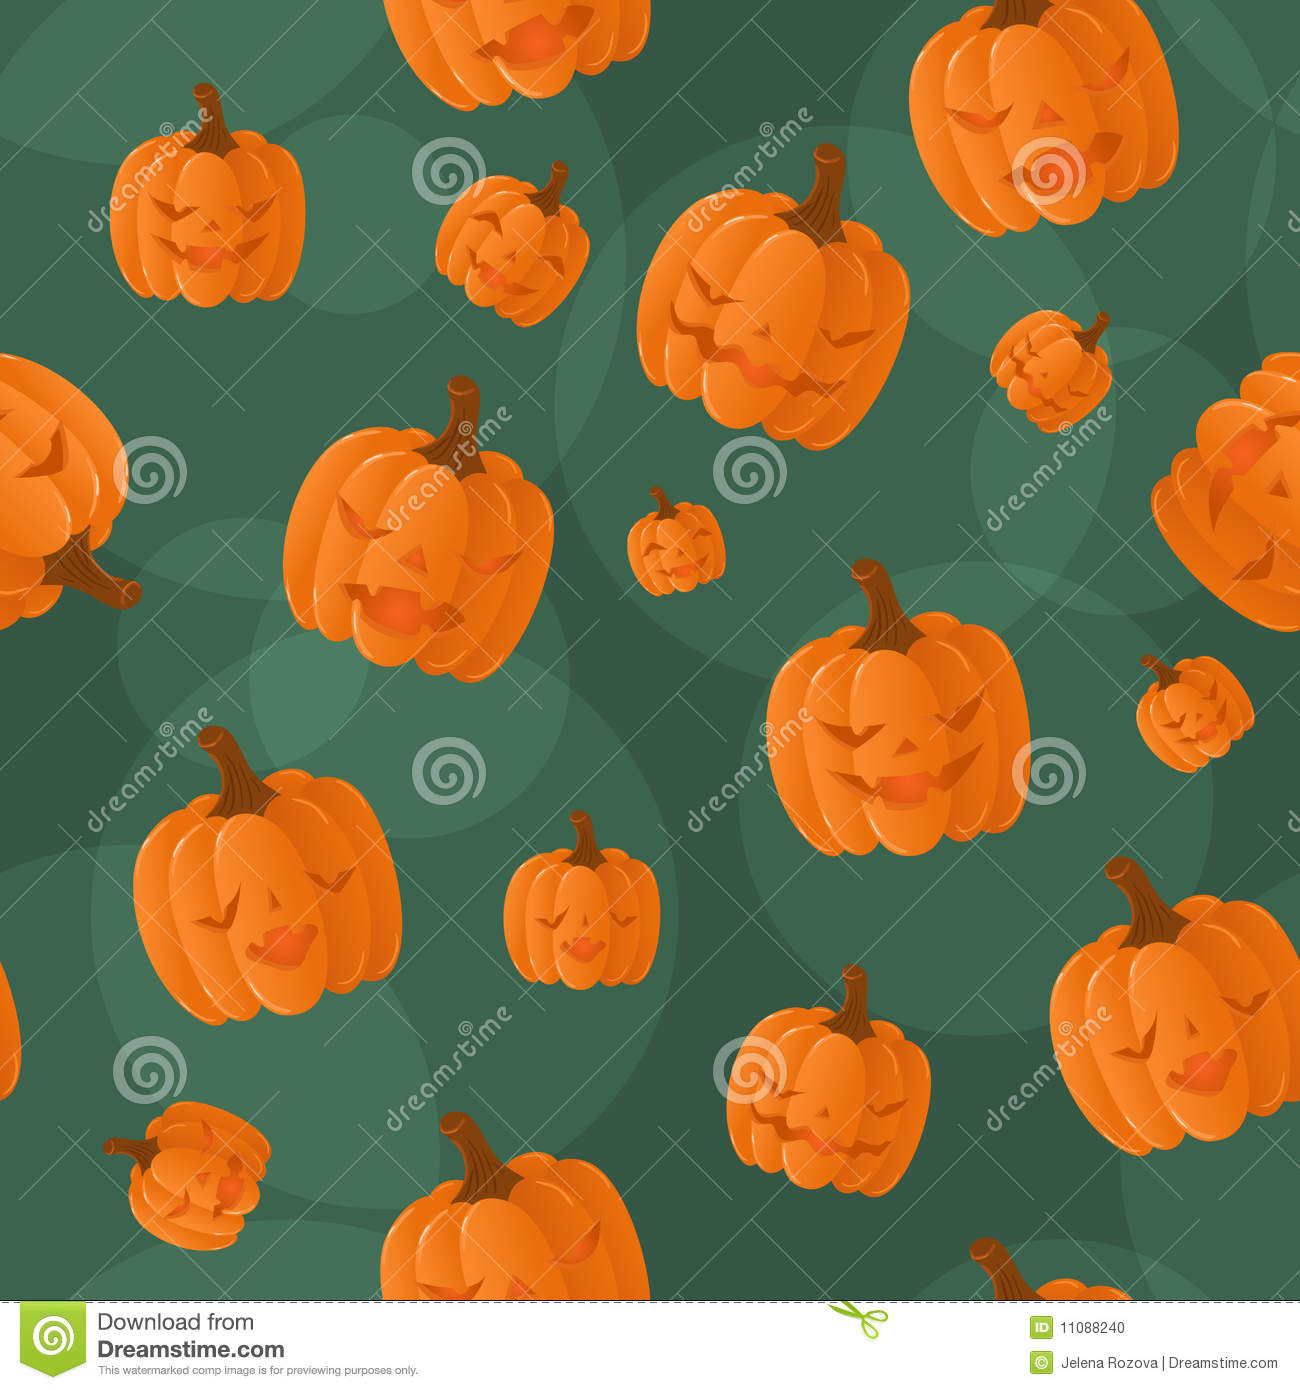 More similar stock images of ` Seamless halloween background `